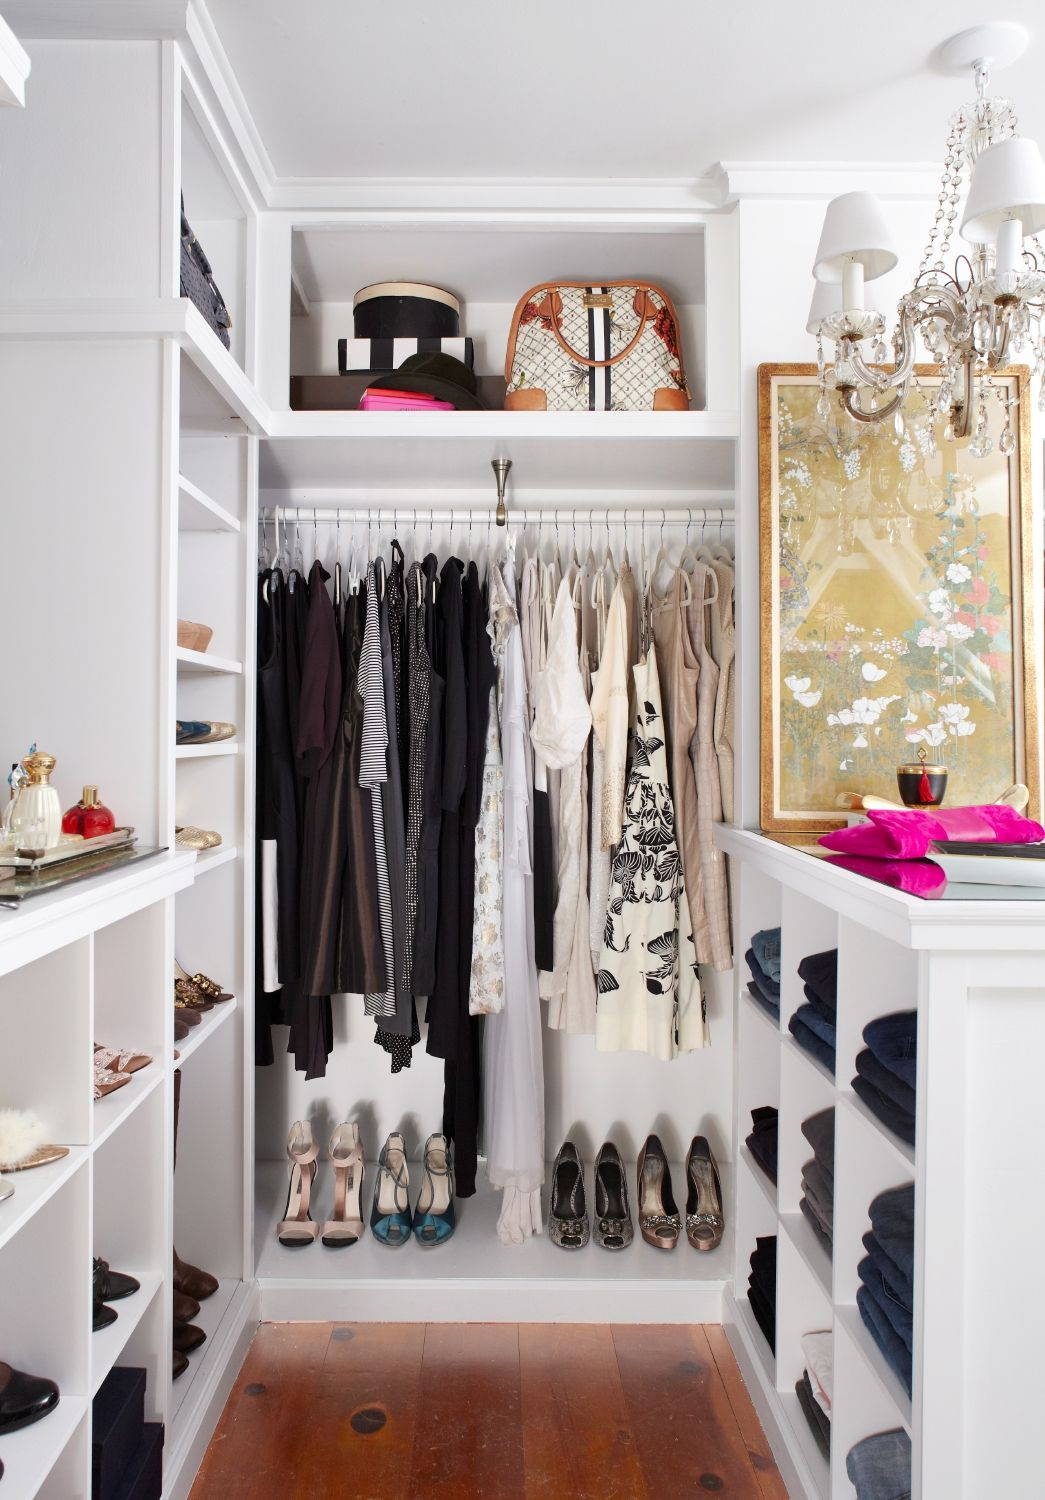 Awesome Small Walk in Closet for Your Room  Closet  Roomideas   New     Awesome Small Walk in Closet for Your Room  Closet  Roomideas